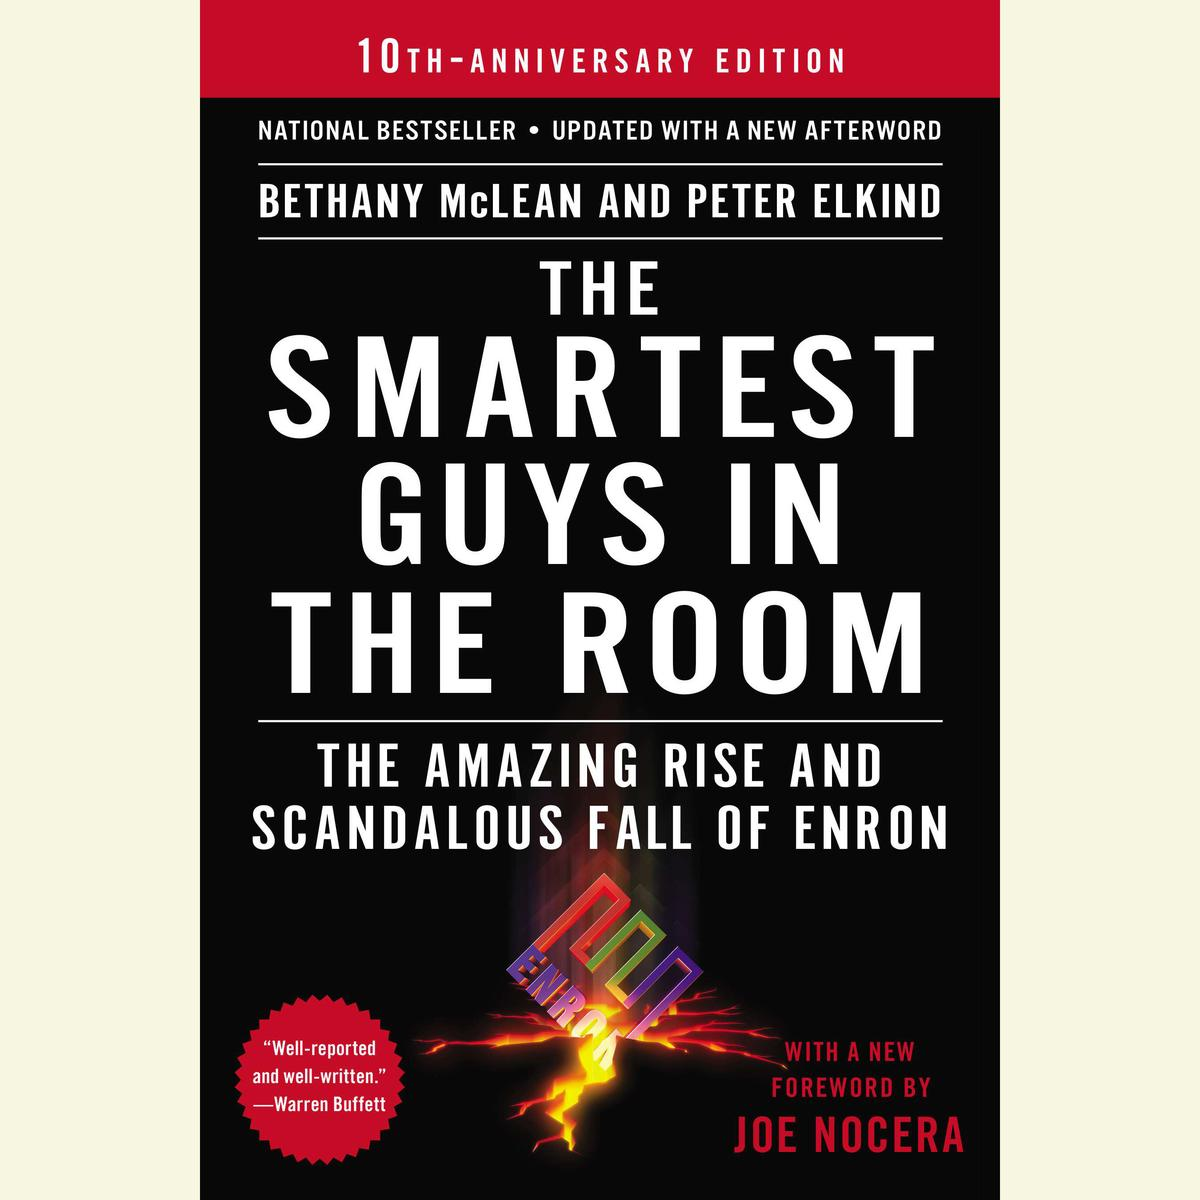 The Smartest Guys in the Room - Audiobook